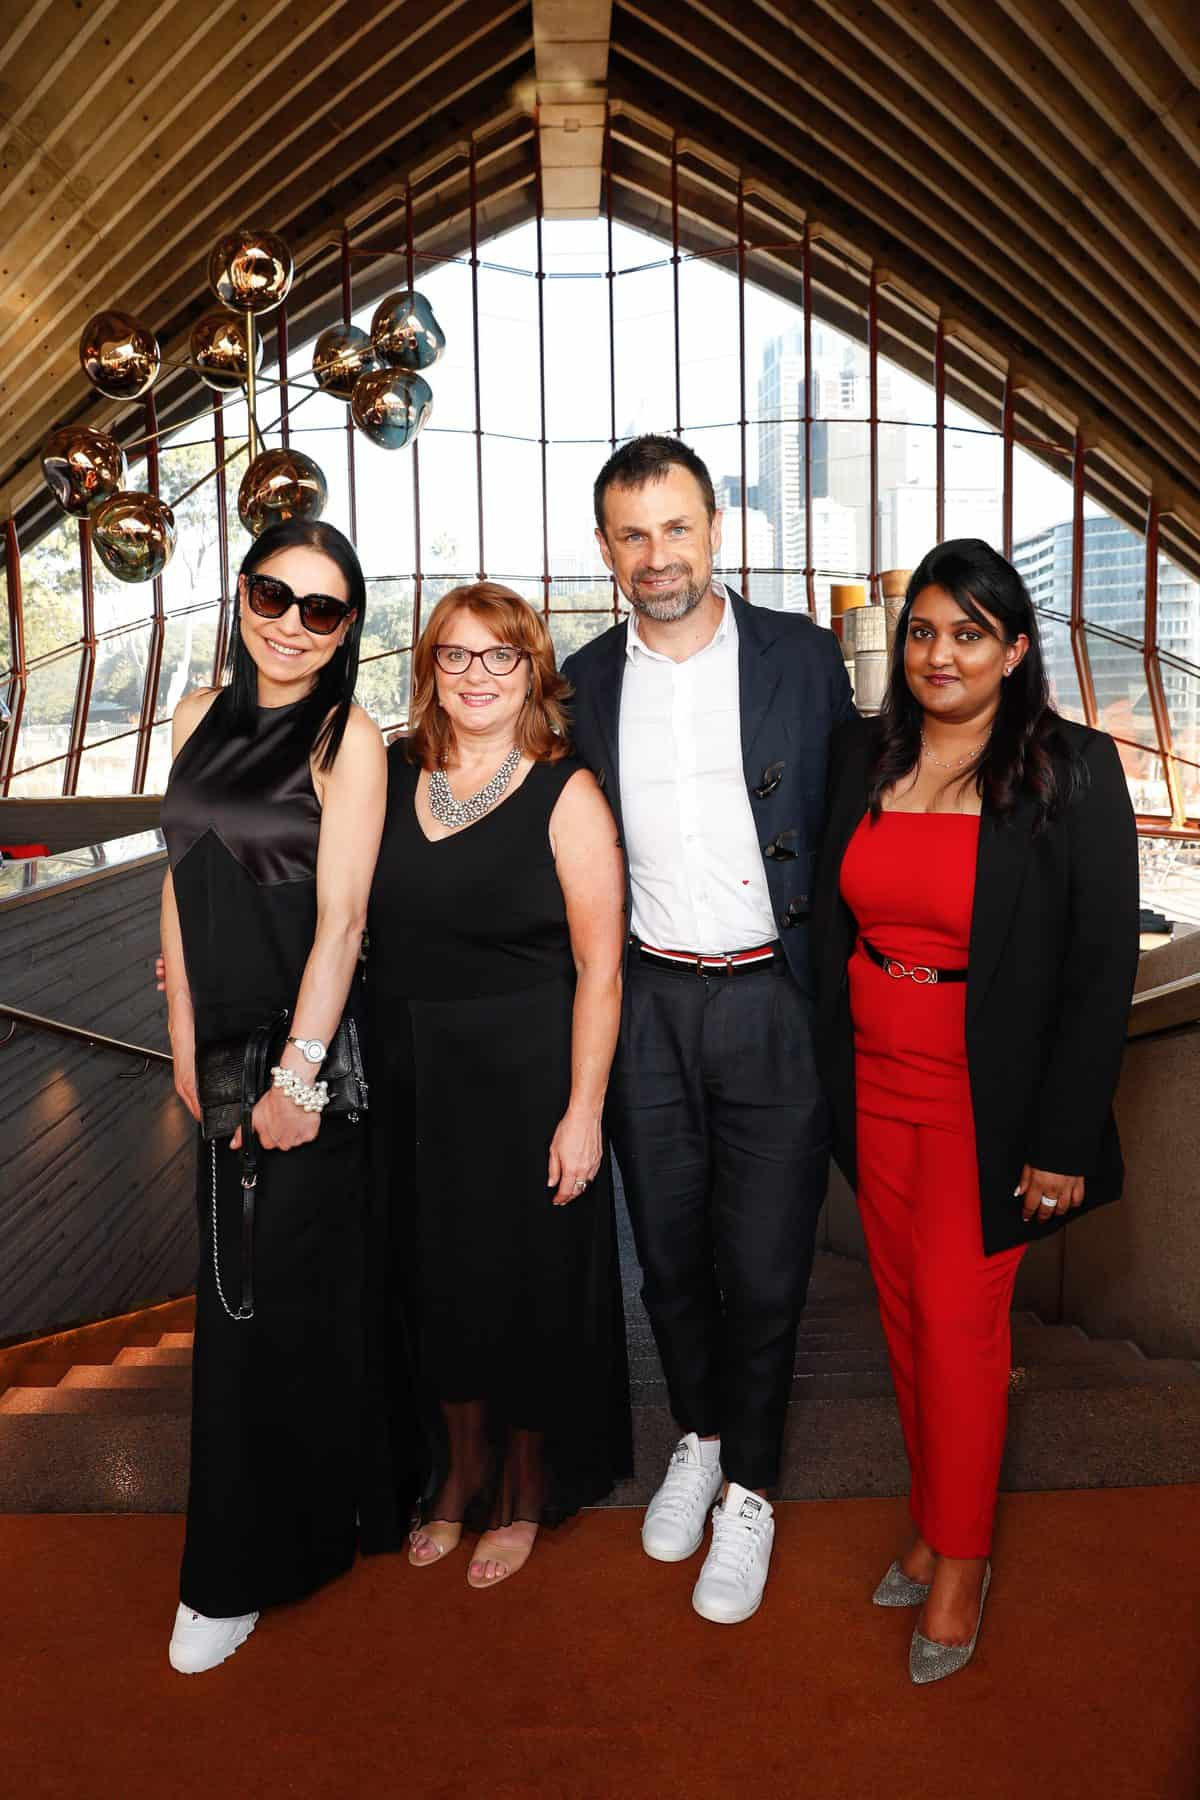 Dora Staszko, Kris Kuczynski, Melissa Shea and Sneha Andani (R) attend the Fashion Mingle Australia VIP Luncheon at Bennelong Restaurant Sydney Opera House on May 14, 2019 in Sydney, Australia. (Photo by Hanna Lassen/Getty Images for Fashion Mingle)